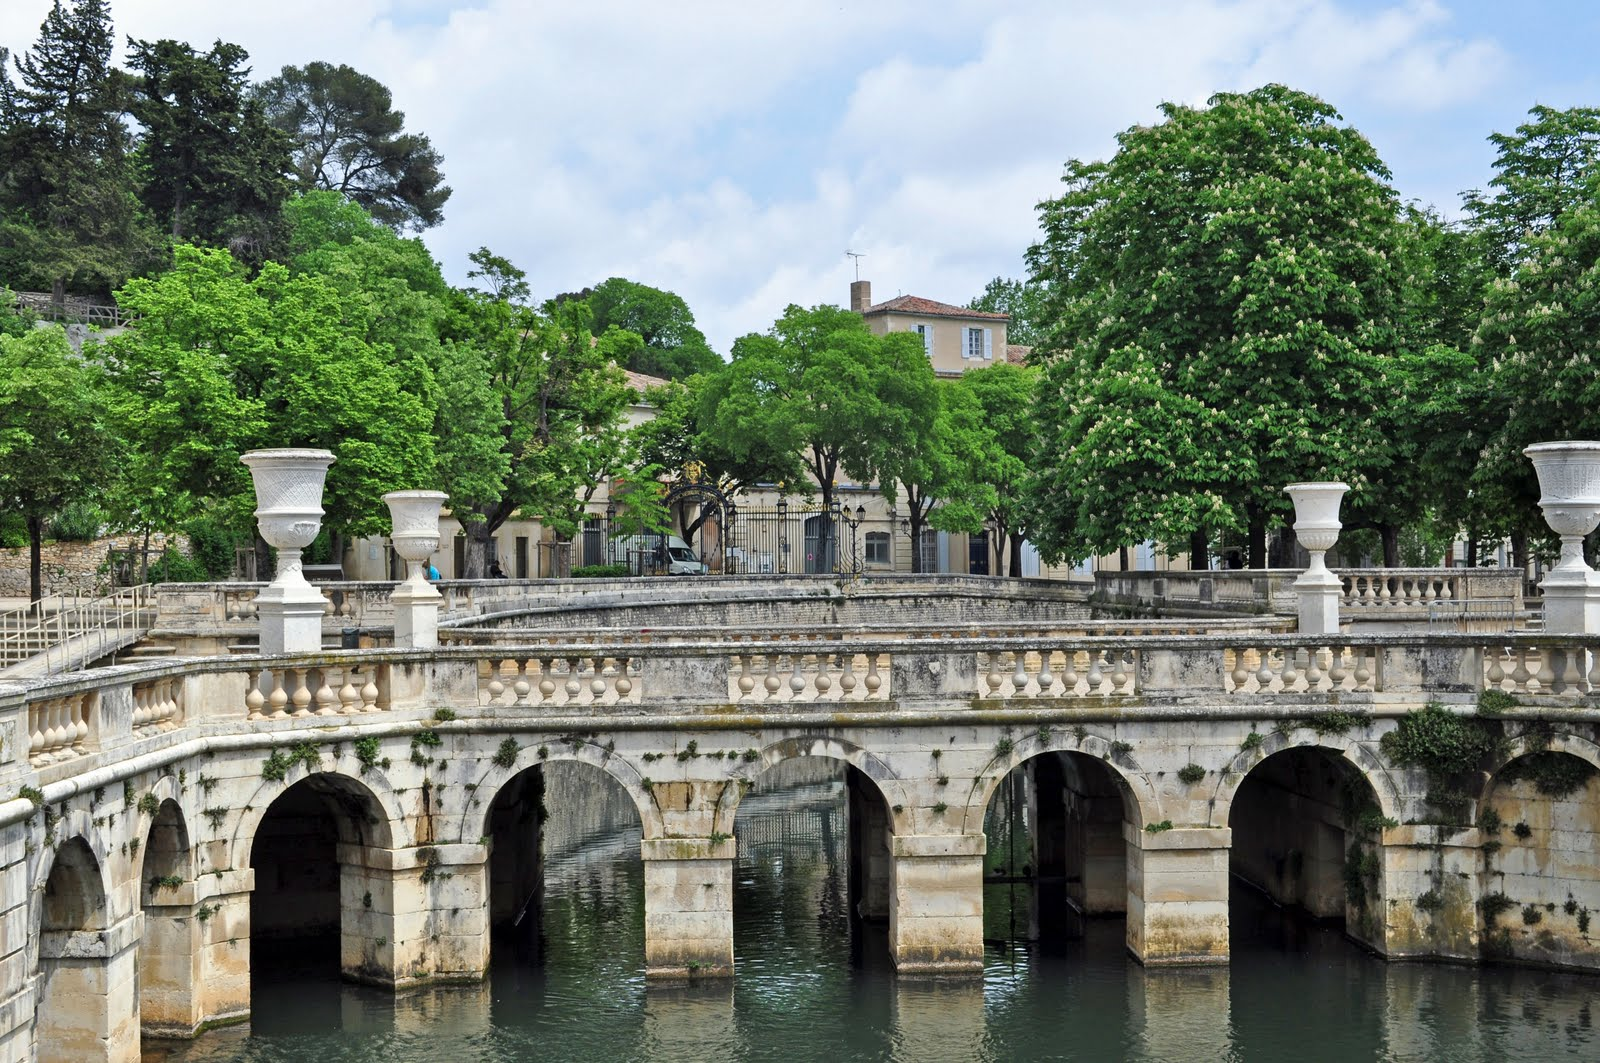 Jardin de la fontaine nimes caribbean living blog for Jardin france